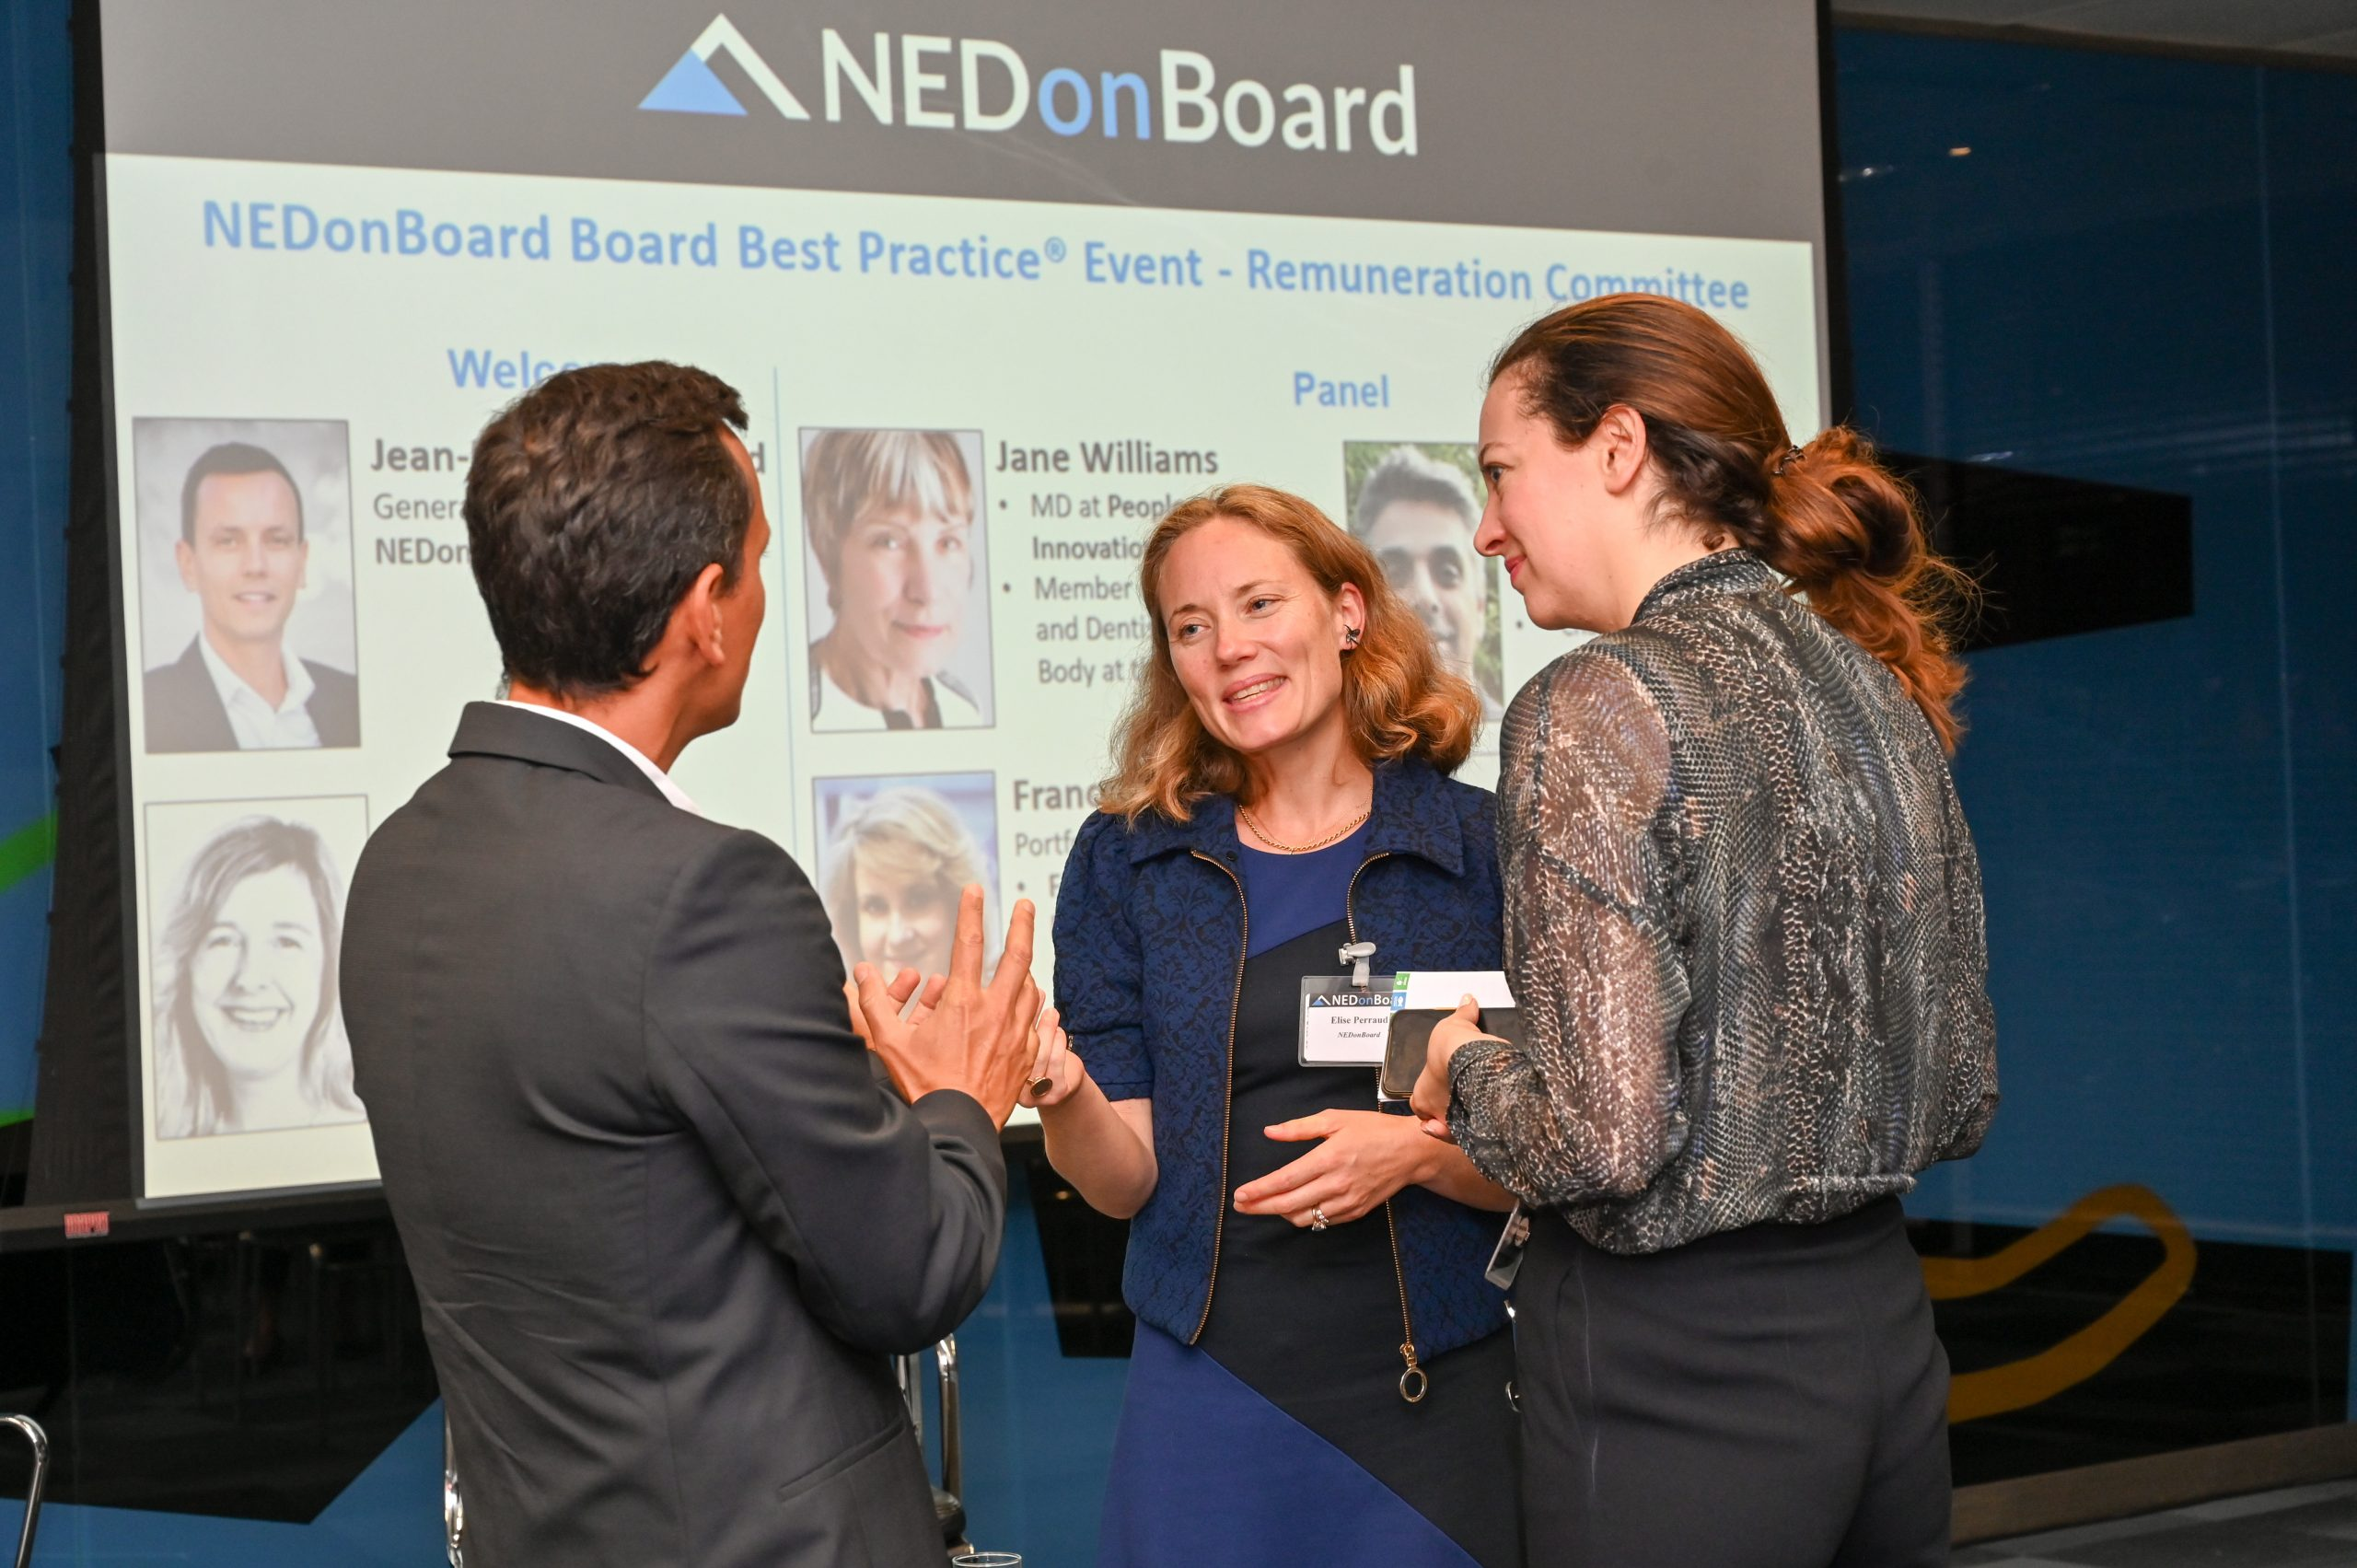 Creating a professional and productive space for aspiring board members